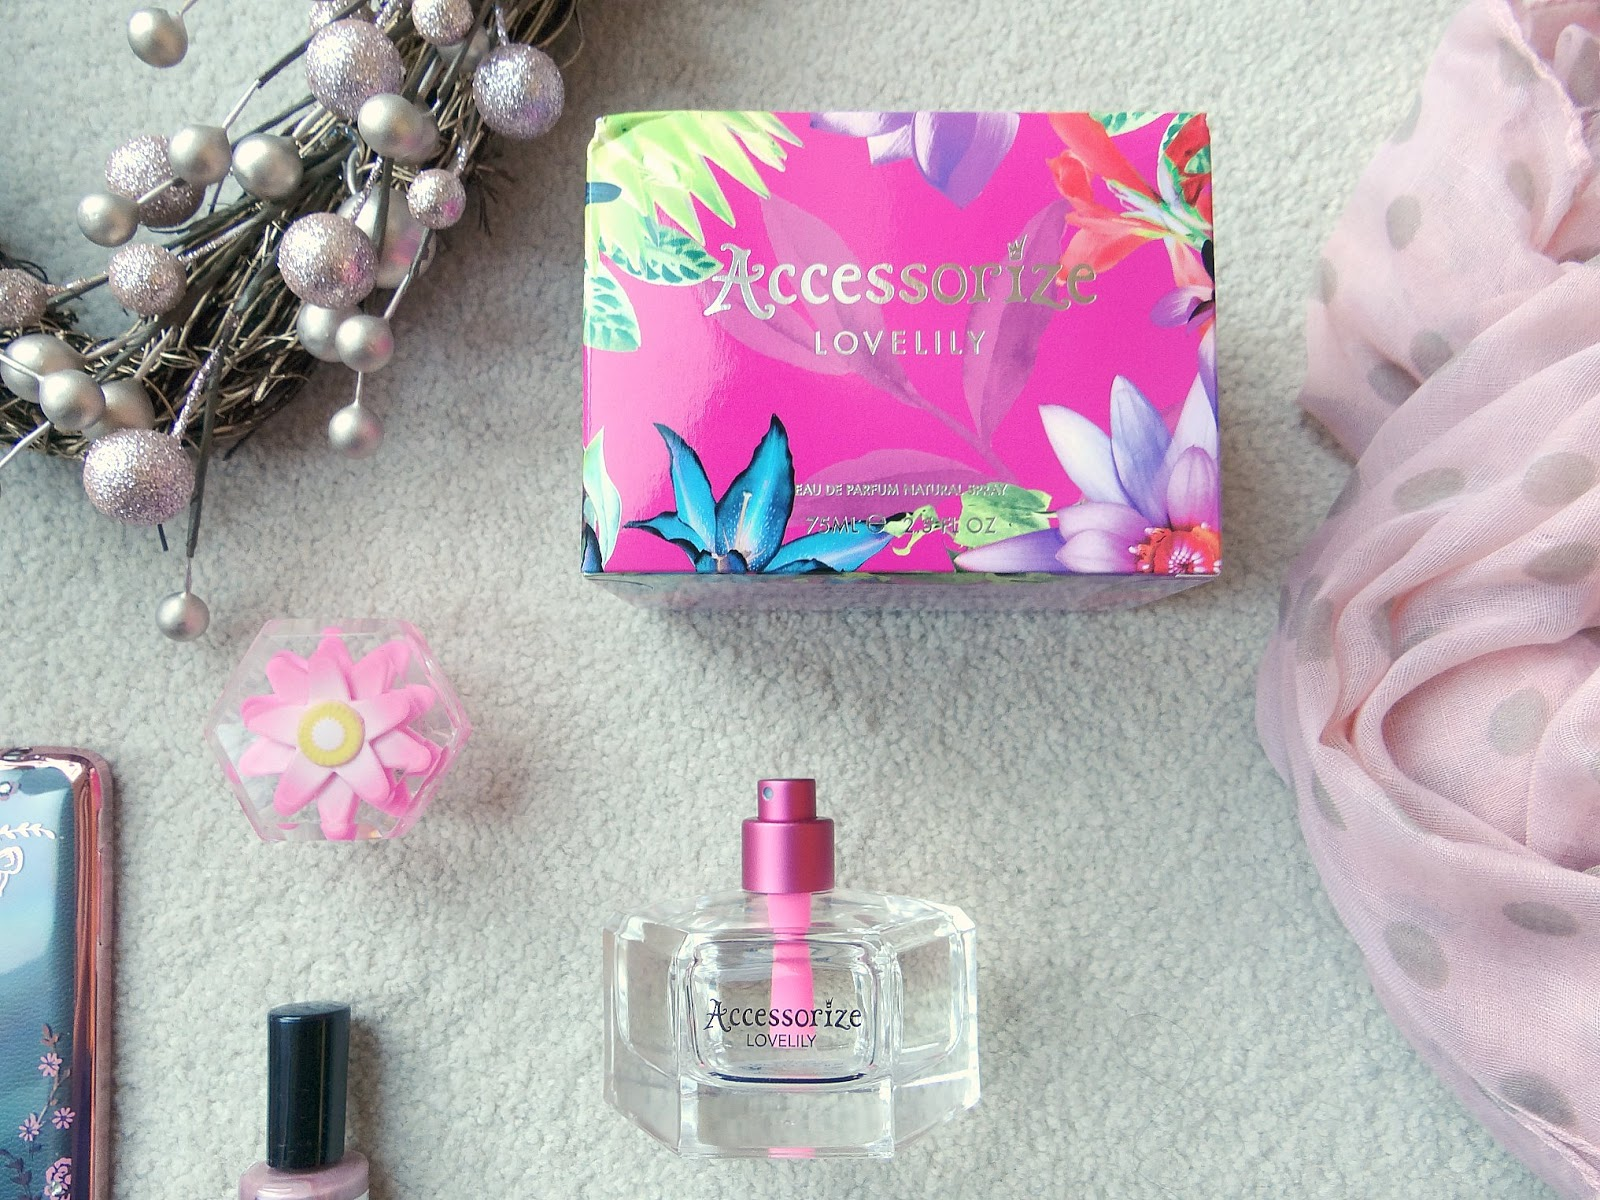 Monsoon accessories, Accessorize LoveLily Eau de Parfum, Perfume Christmas 2016